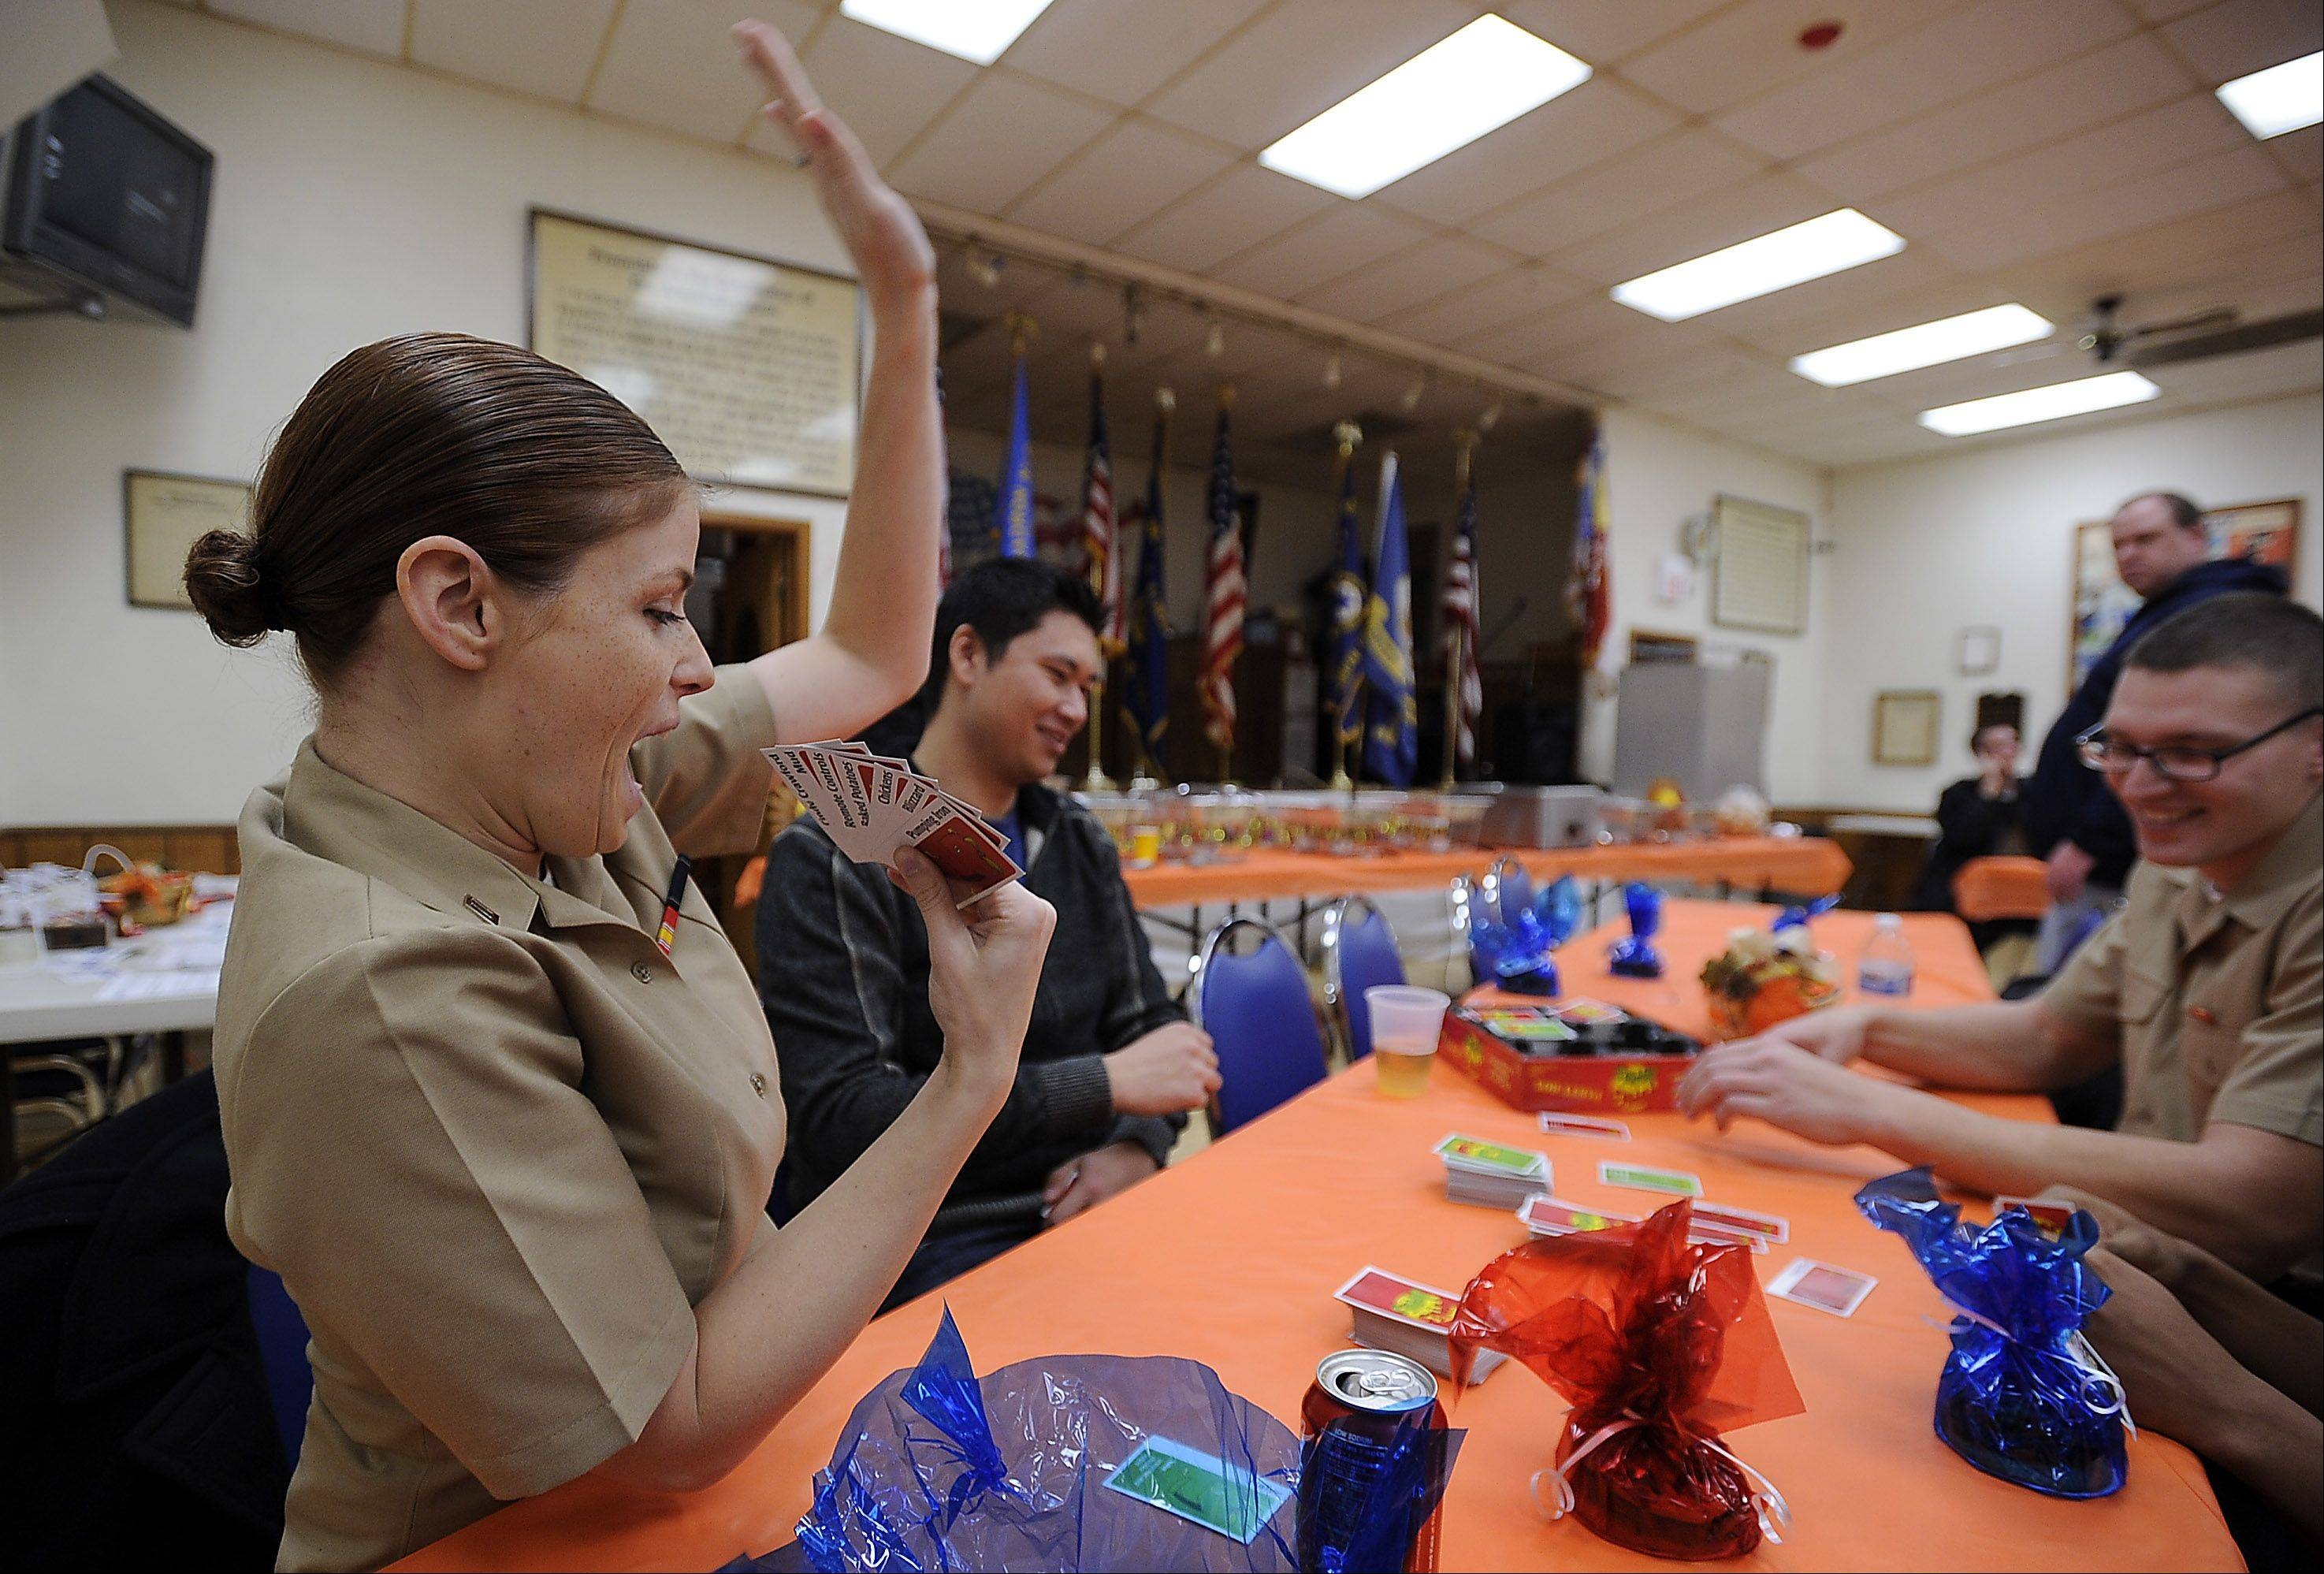 Kayla Turrubiate of Fort Hood, Texas, and her friends play cards before having Thanksgiving dinner at the American Legion Post 690 in Palatine with other recruits from Great Lakes Naval Station.